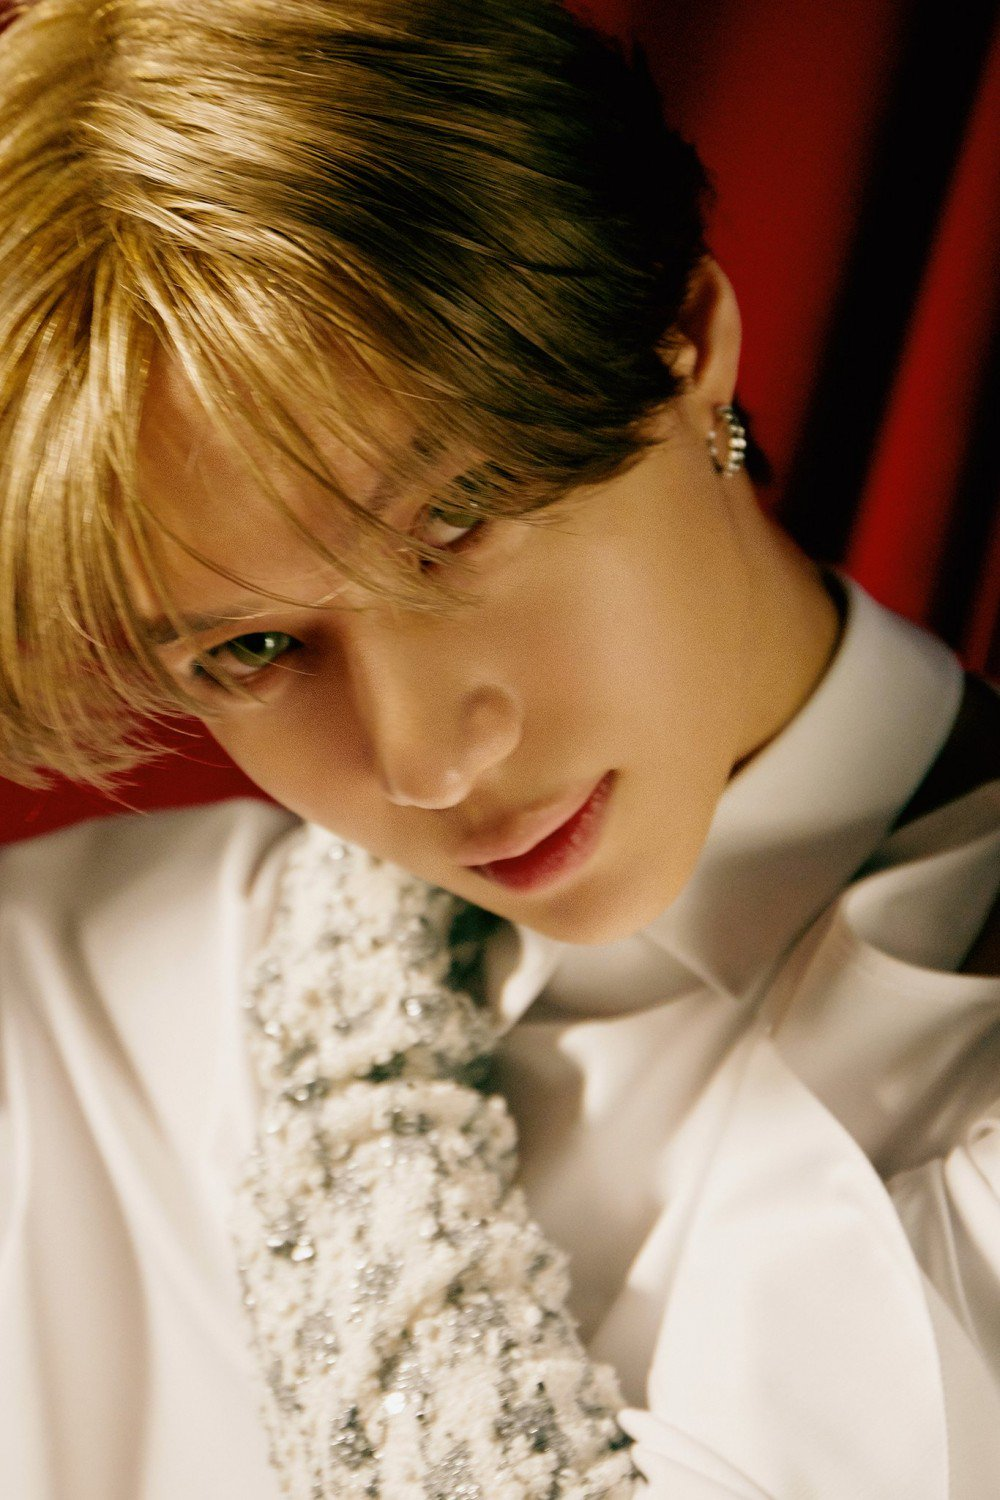 Taemin shows off his elegant visuals as he prepares for